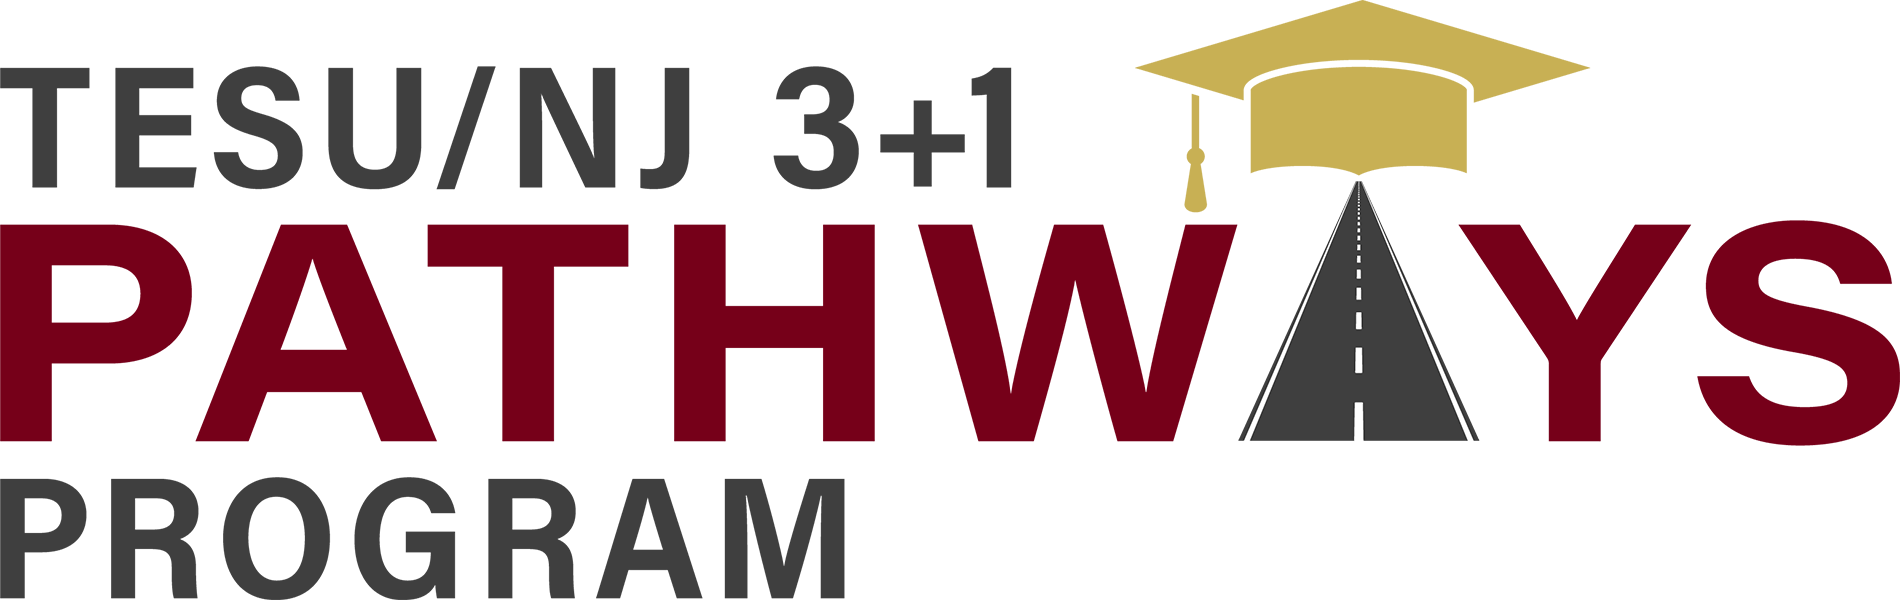 TESU/NJ 3+1 Pathways Program